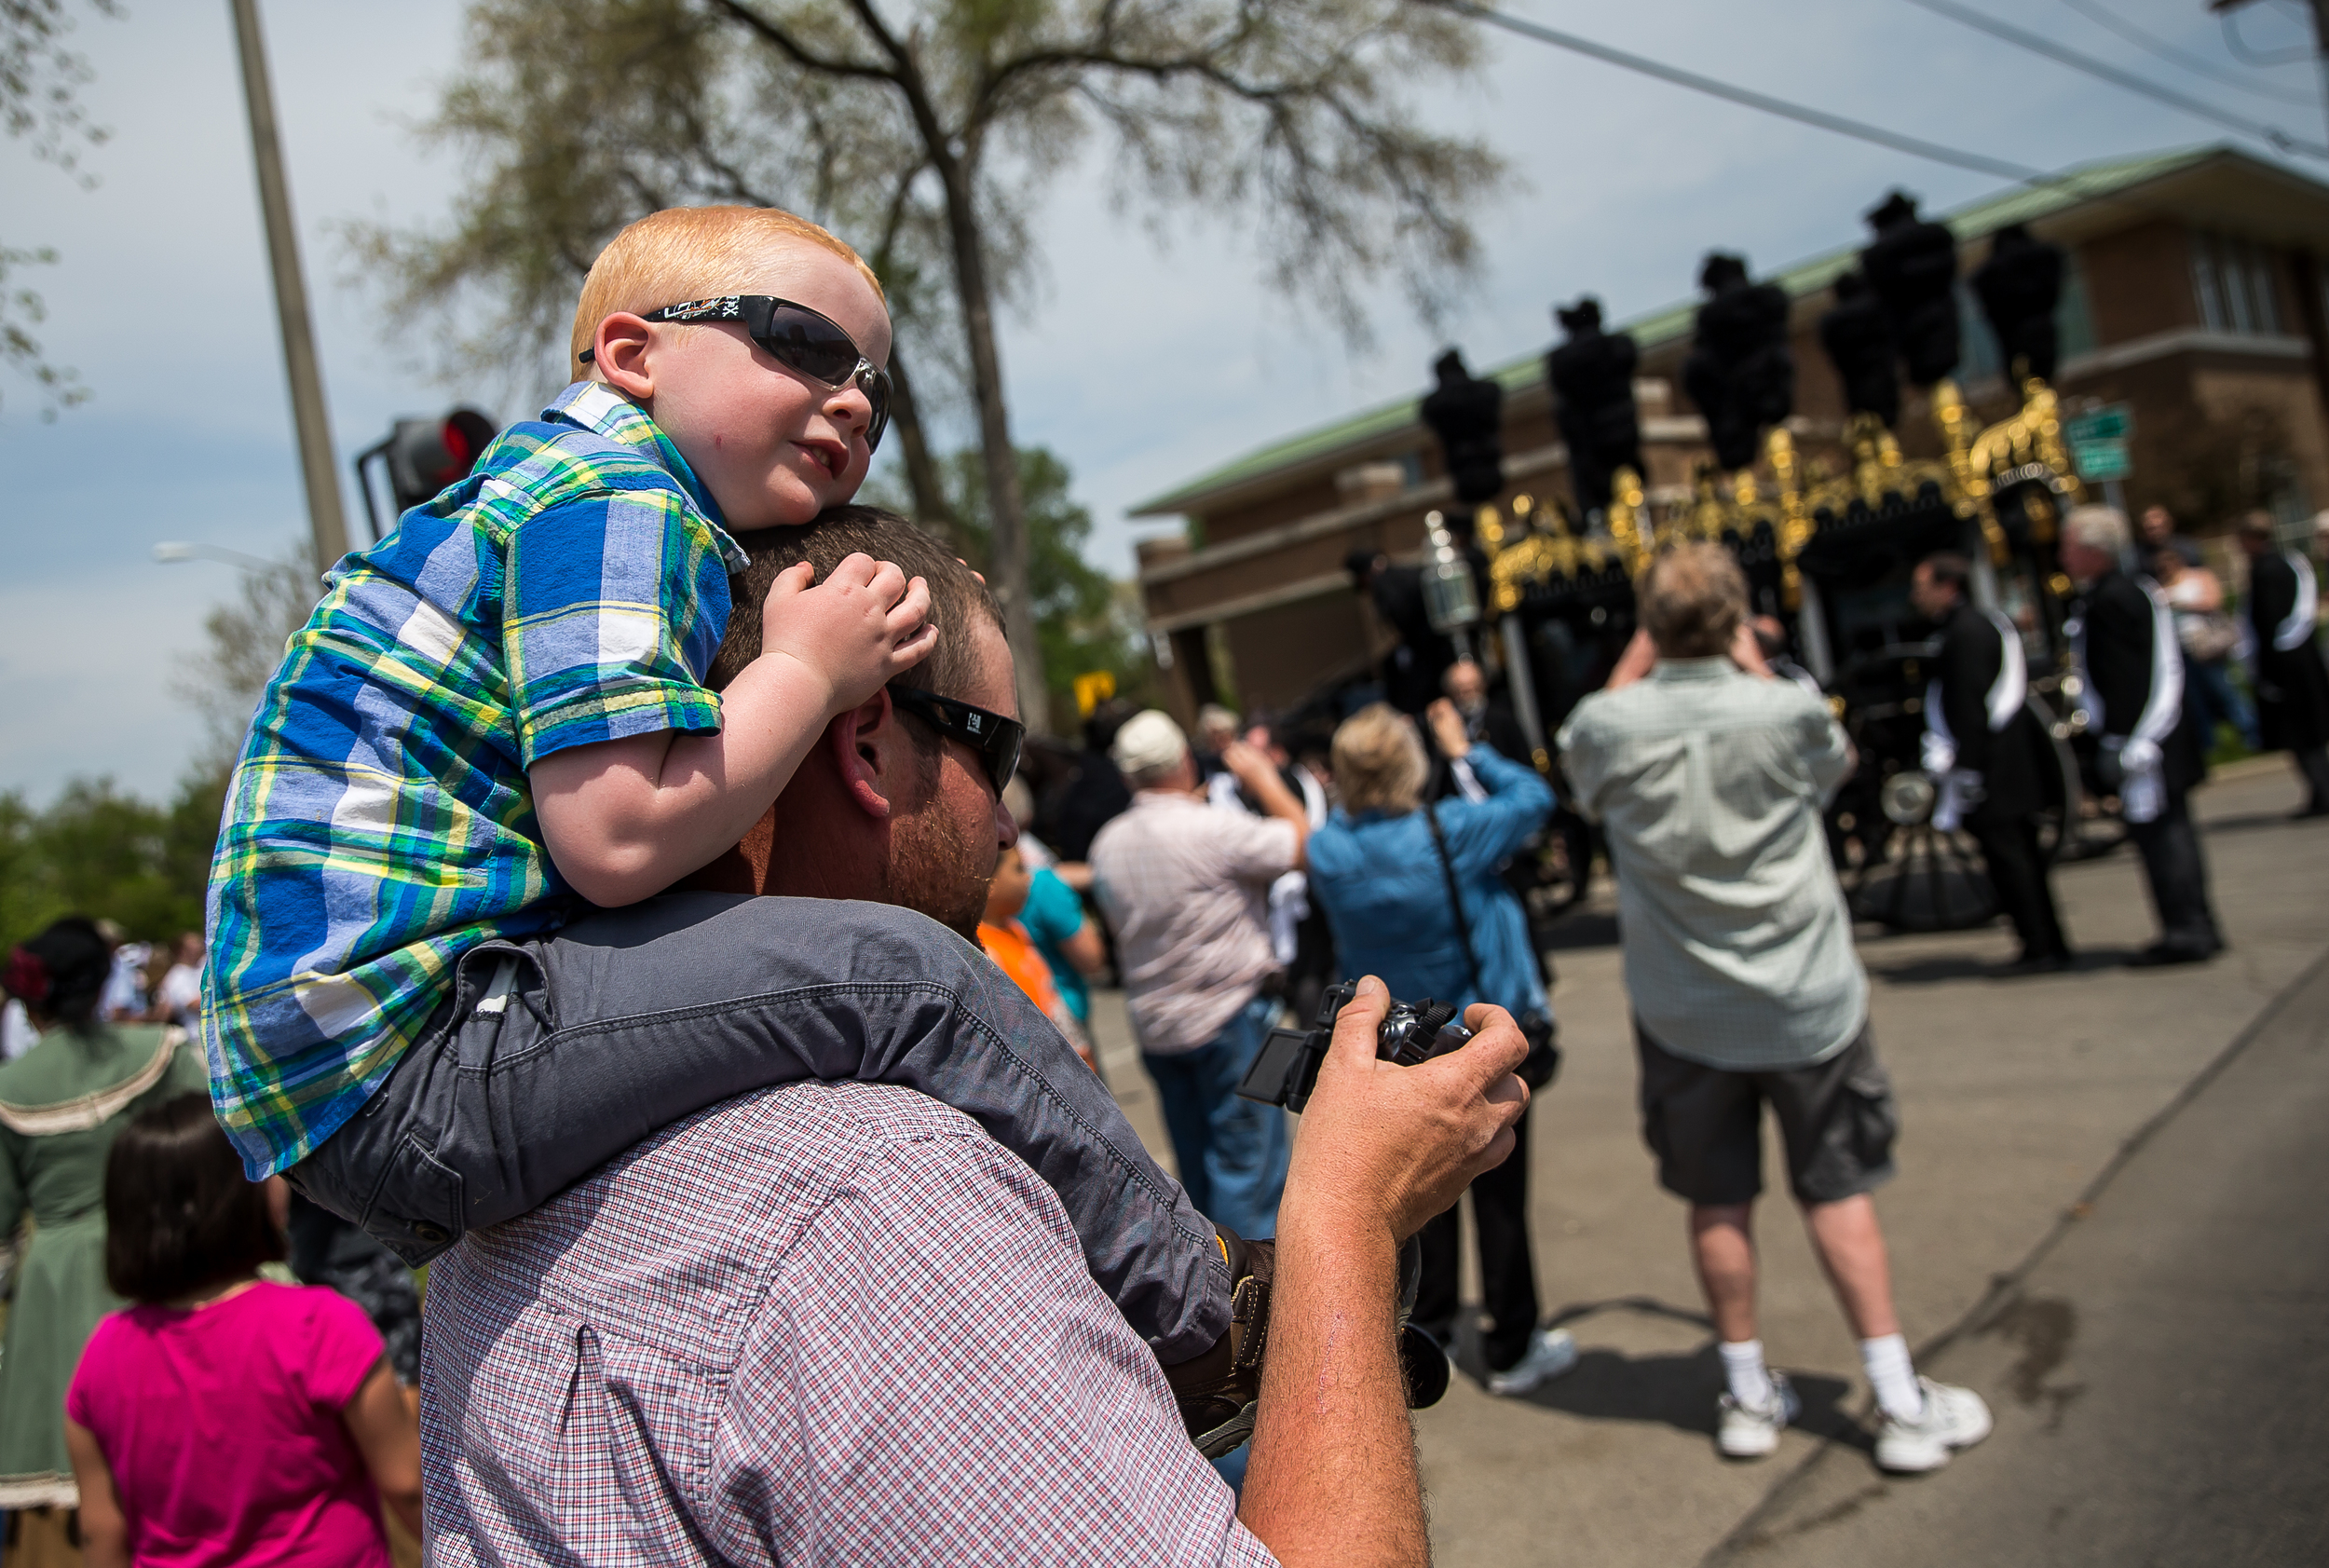 Brody Holmes, 3, watches the Lincoln hearse pass by from the shoulders of his father, Brian, during the funeral procession in the 2015 Lincoln Funeral Re-enactment, Sunday, May 3, 2015, in Springfield, Ill. Justin L. Fowler/The State Journal-Register